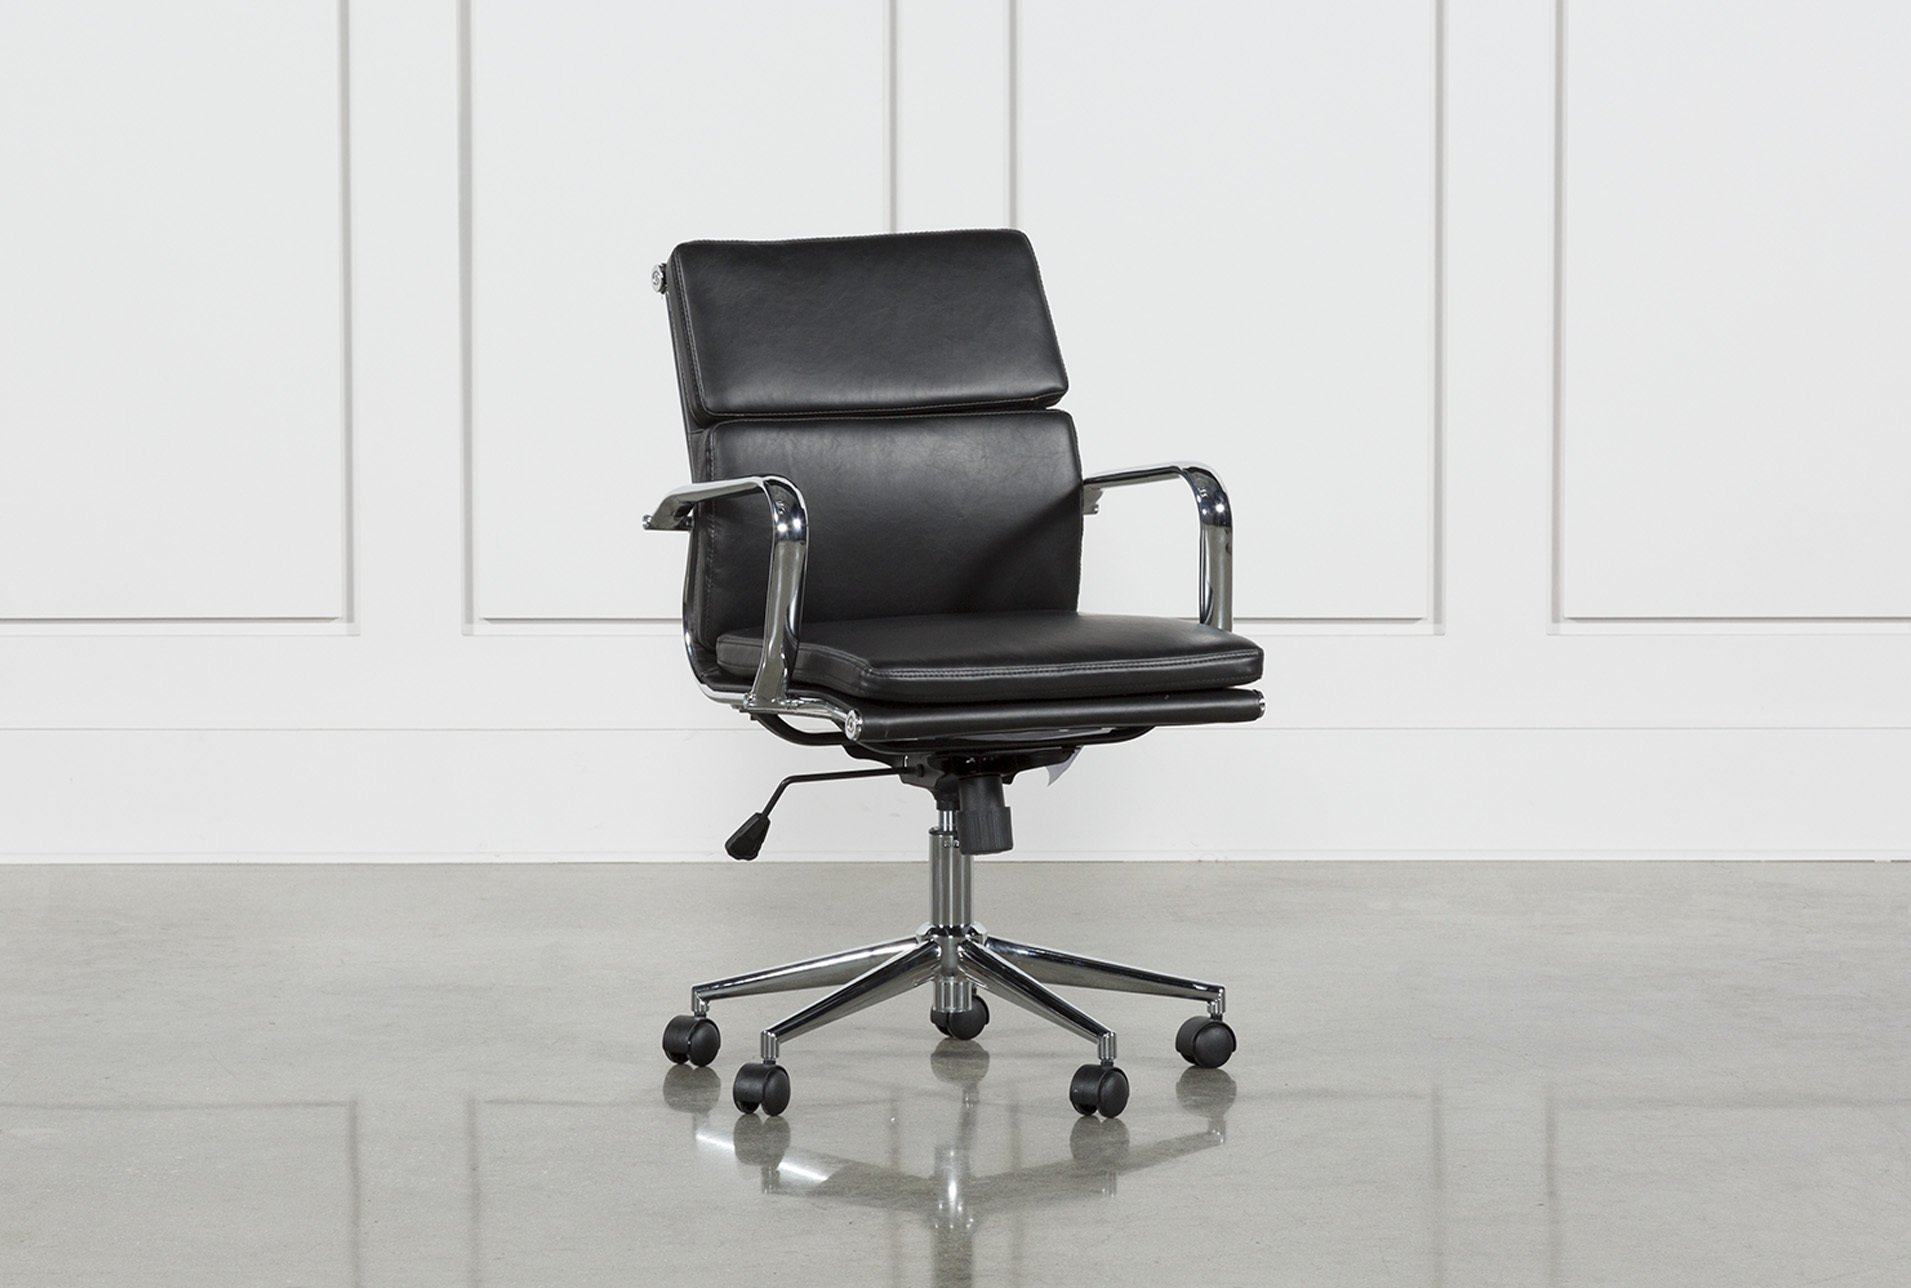 Get cute and pretty office chairs for   your office comfy seating